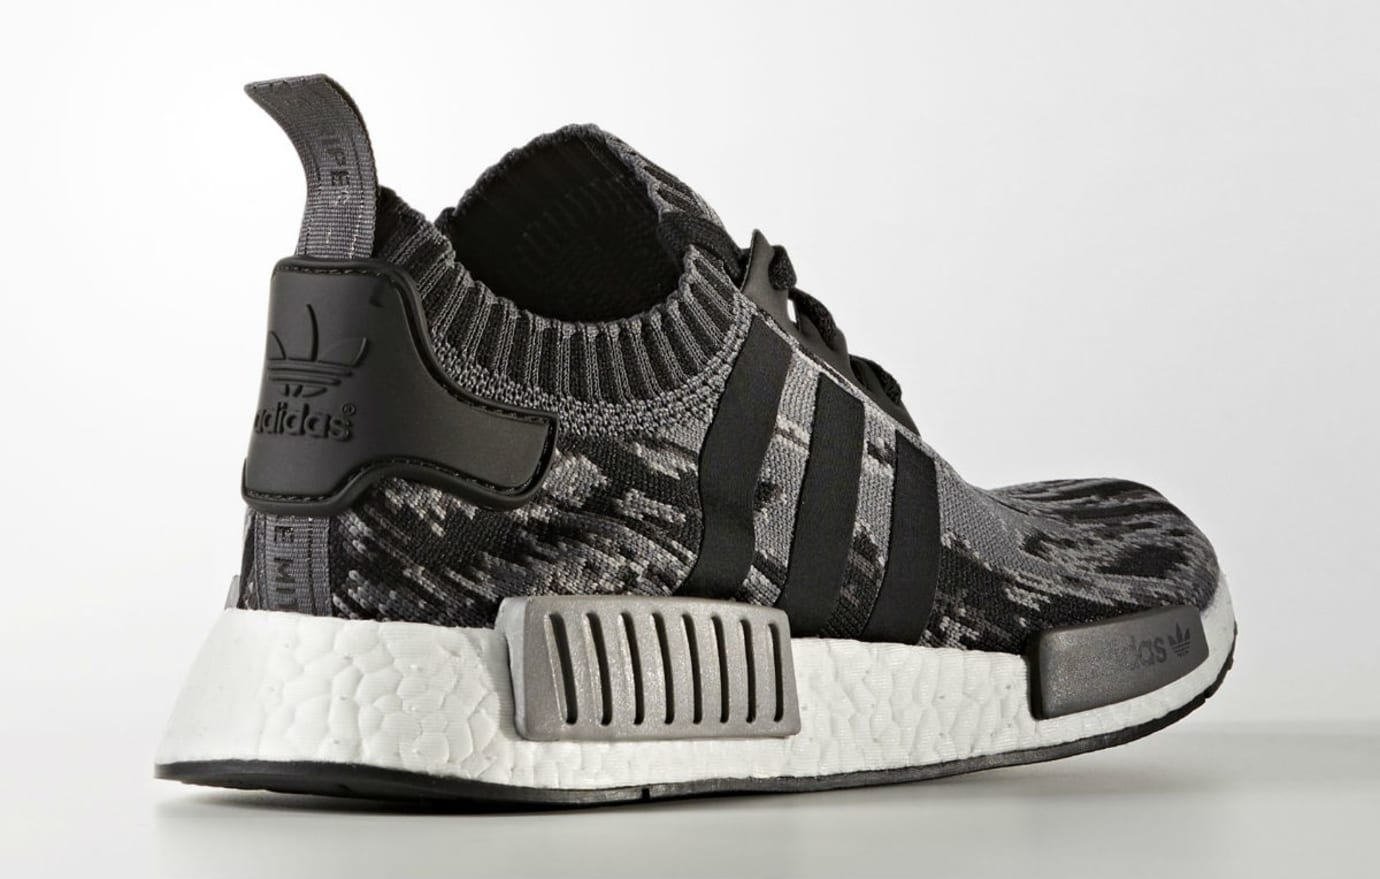 0bf1def002338 Adidas NMD R1 Primeknit Glitch Camo Core Black Grey Three Release Date  Lateral BZ0223